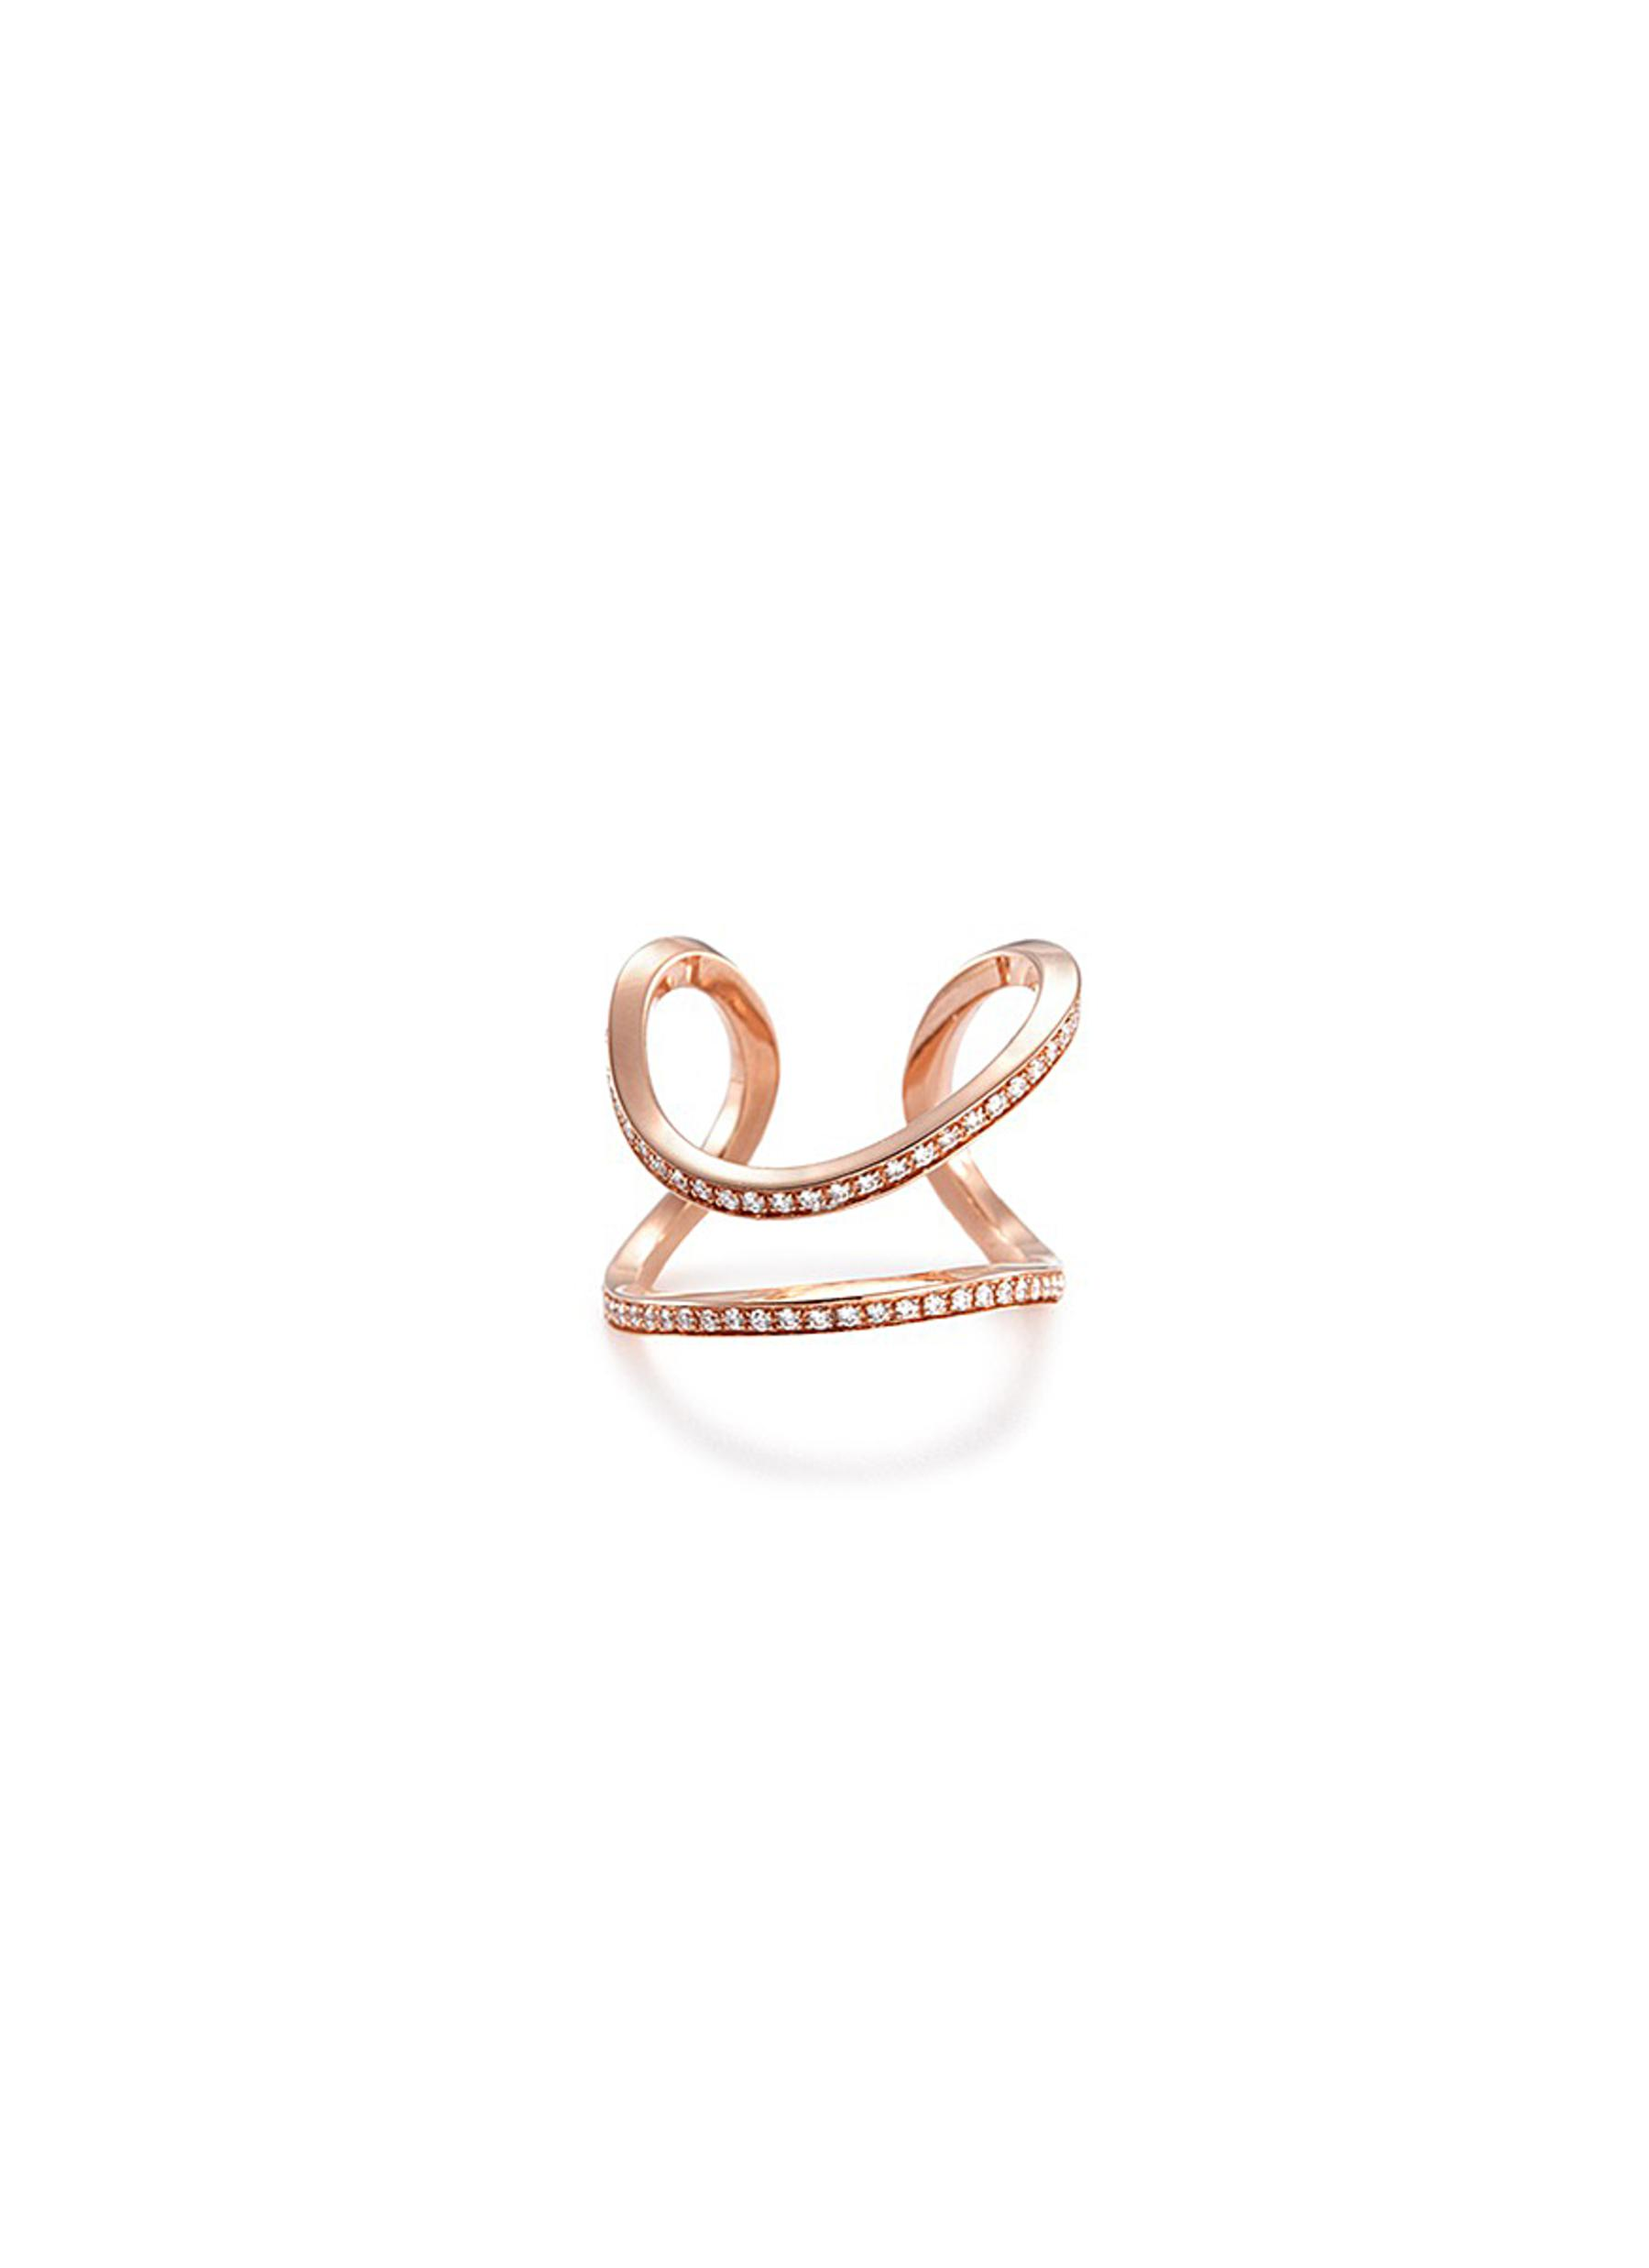 'SERPENTINE' DIAMOND 18K ROSE GOLD OPEN RING